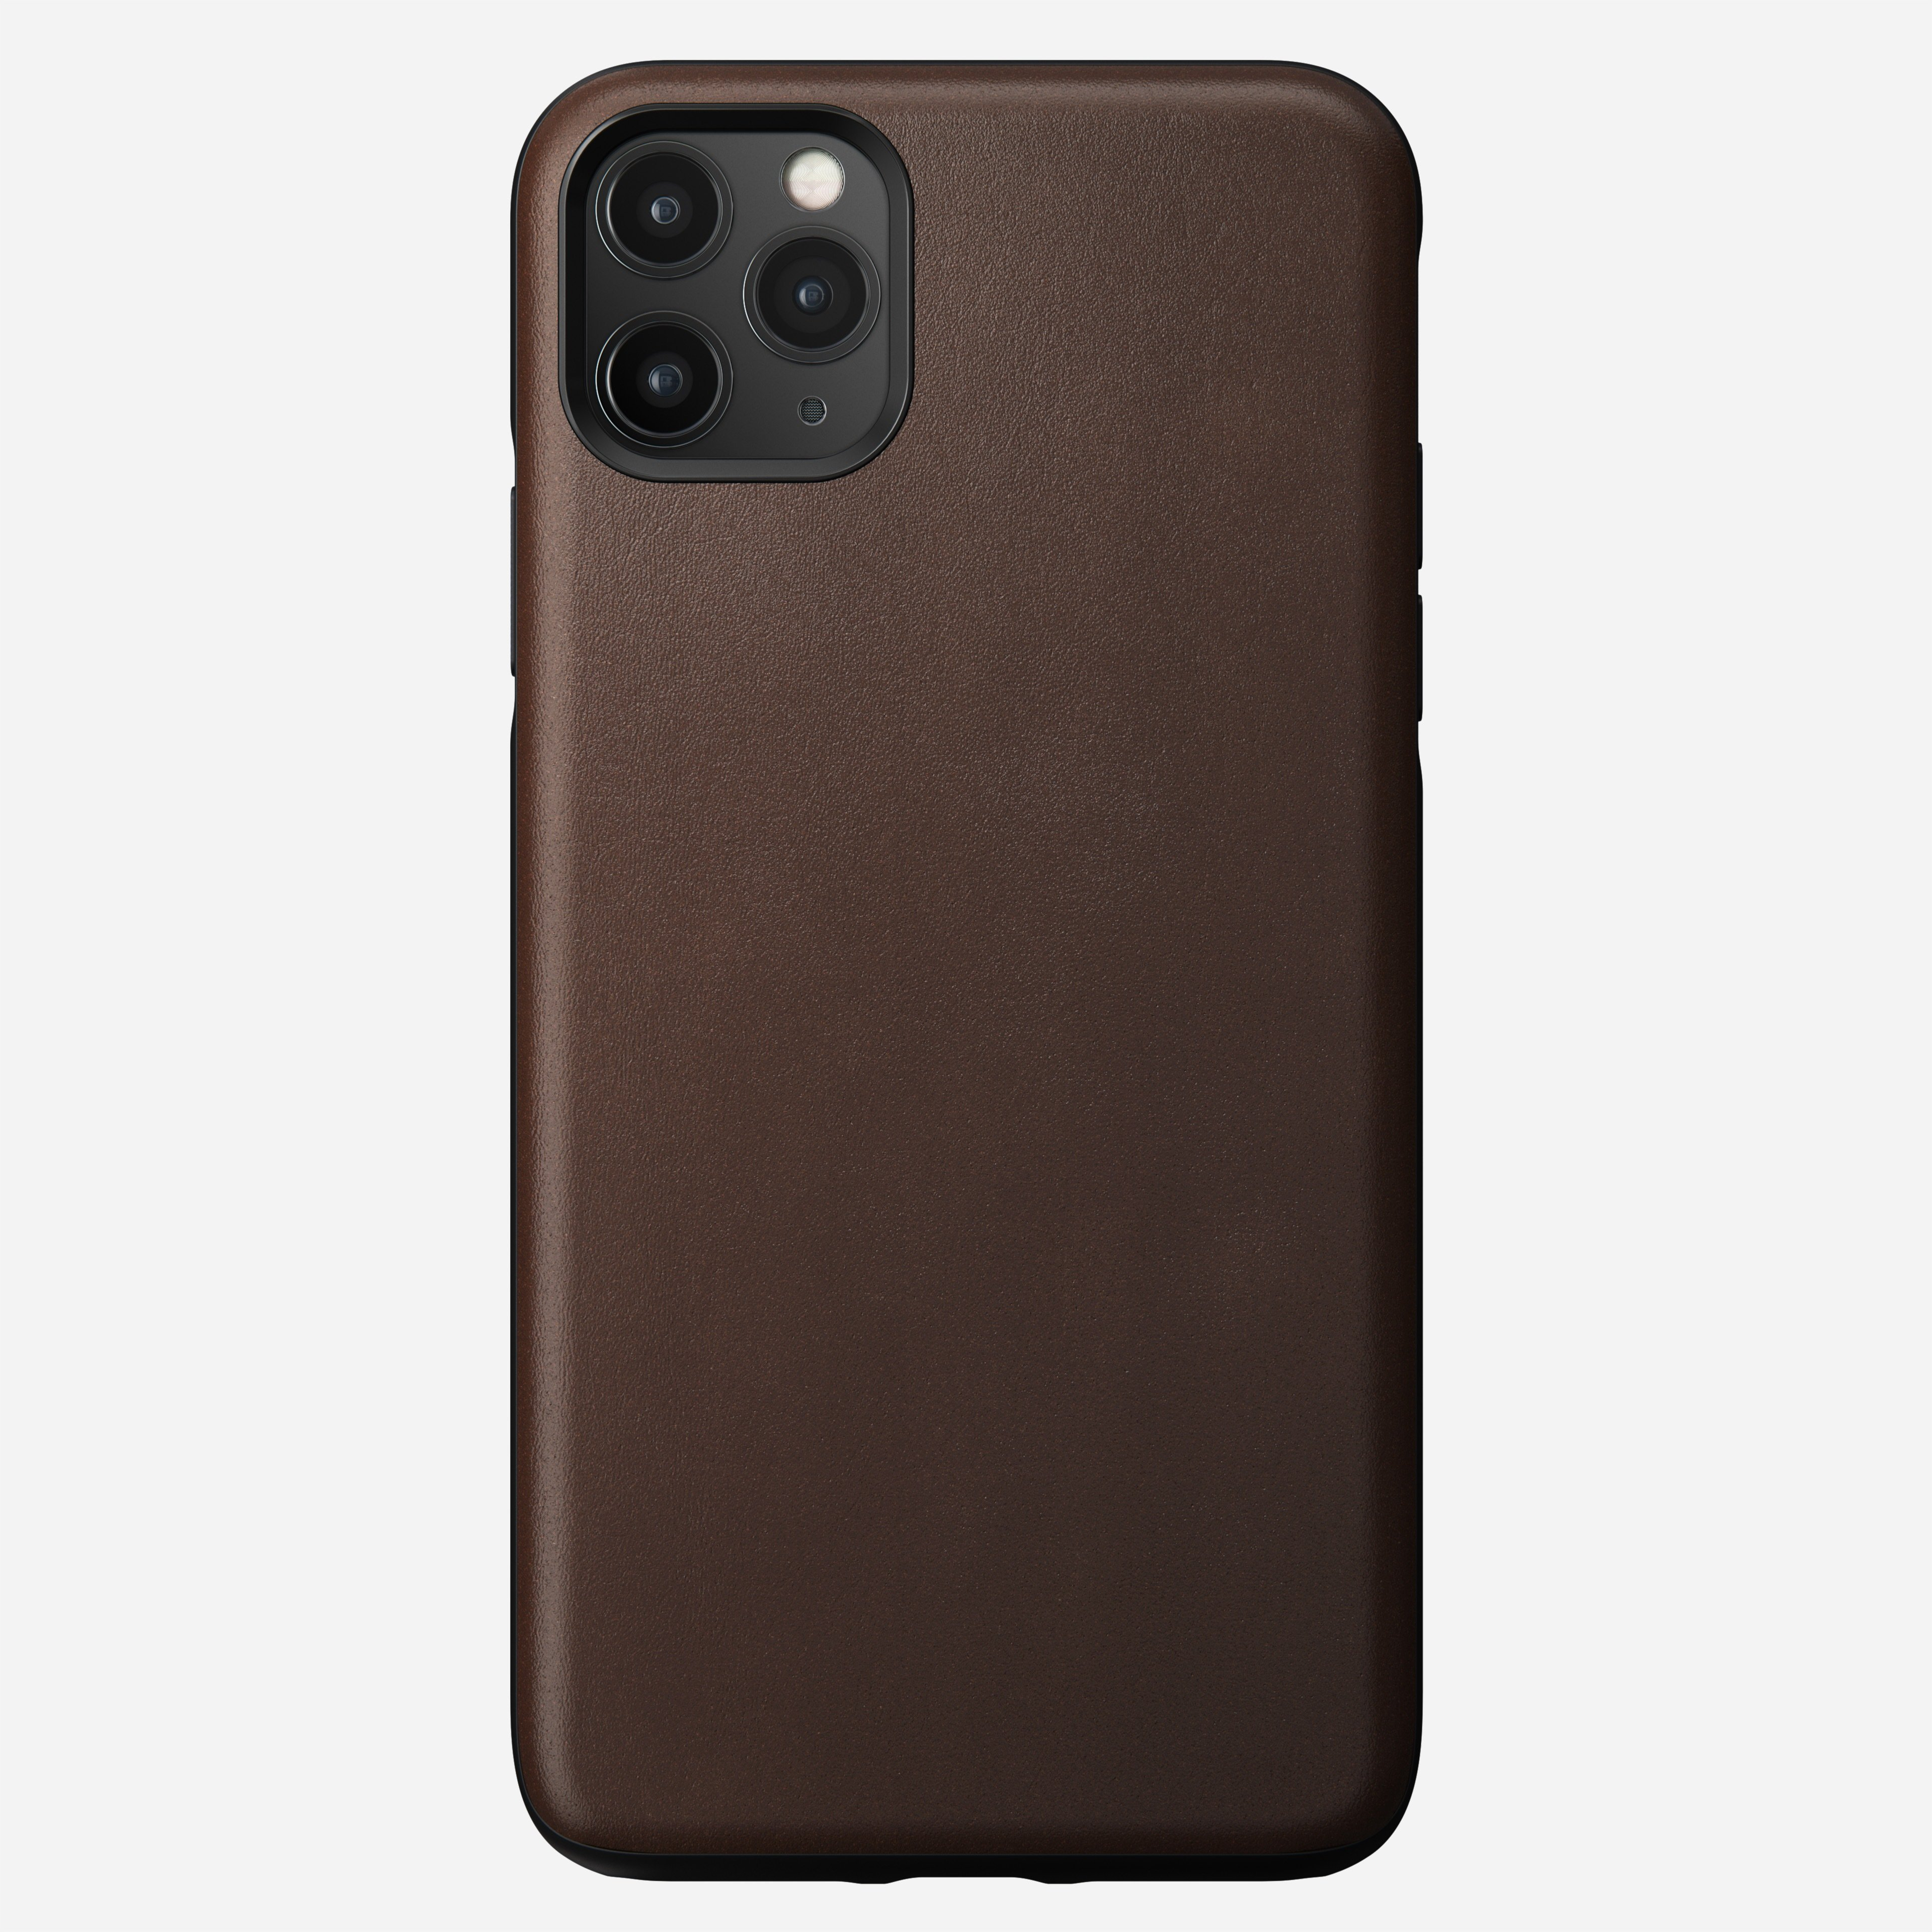 Rugged Leather Case for iPhone 11 Pro Max, Brown